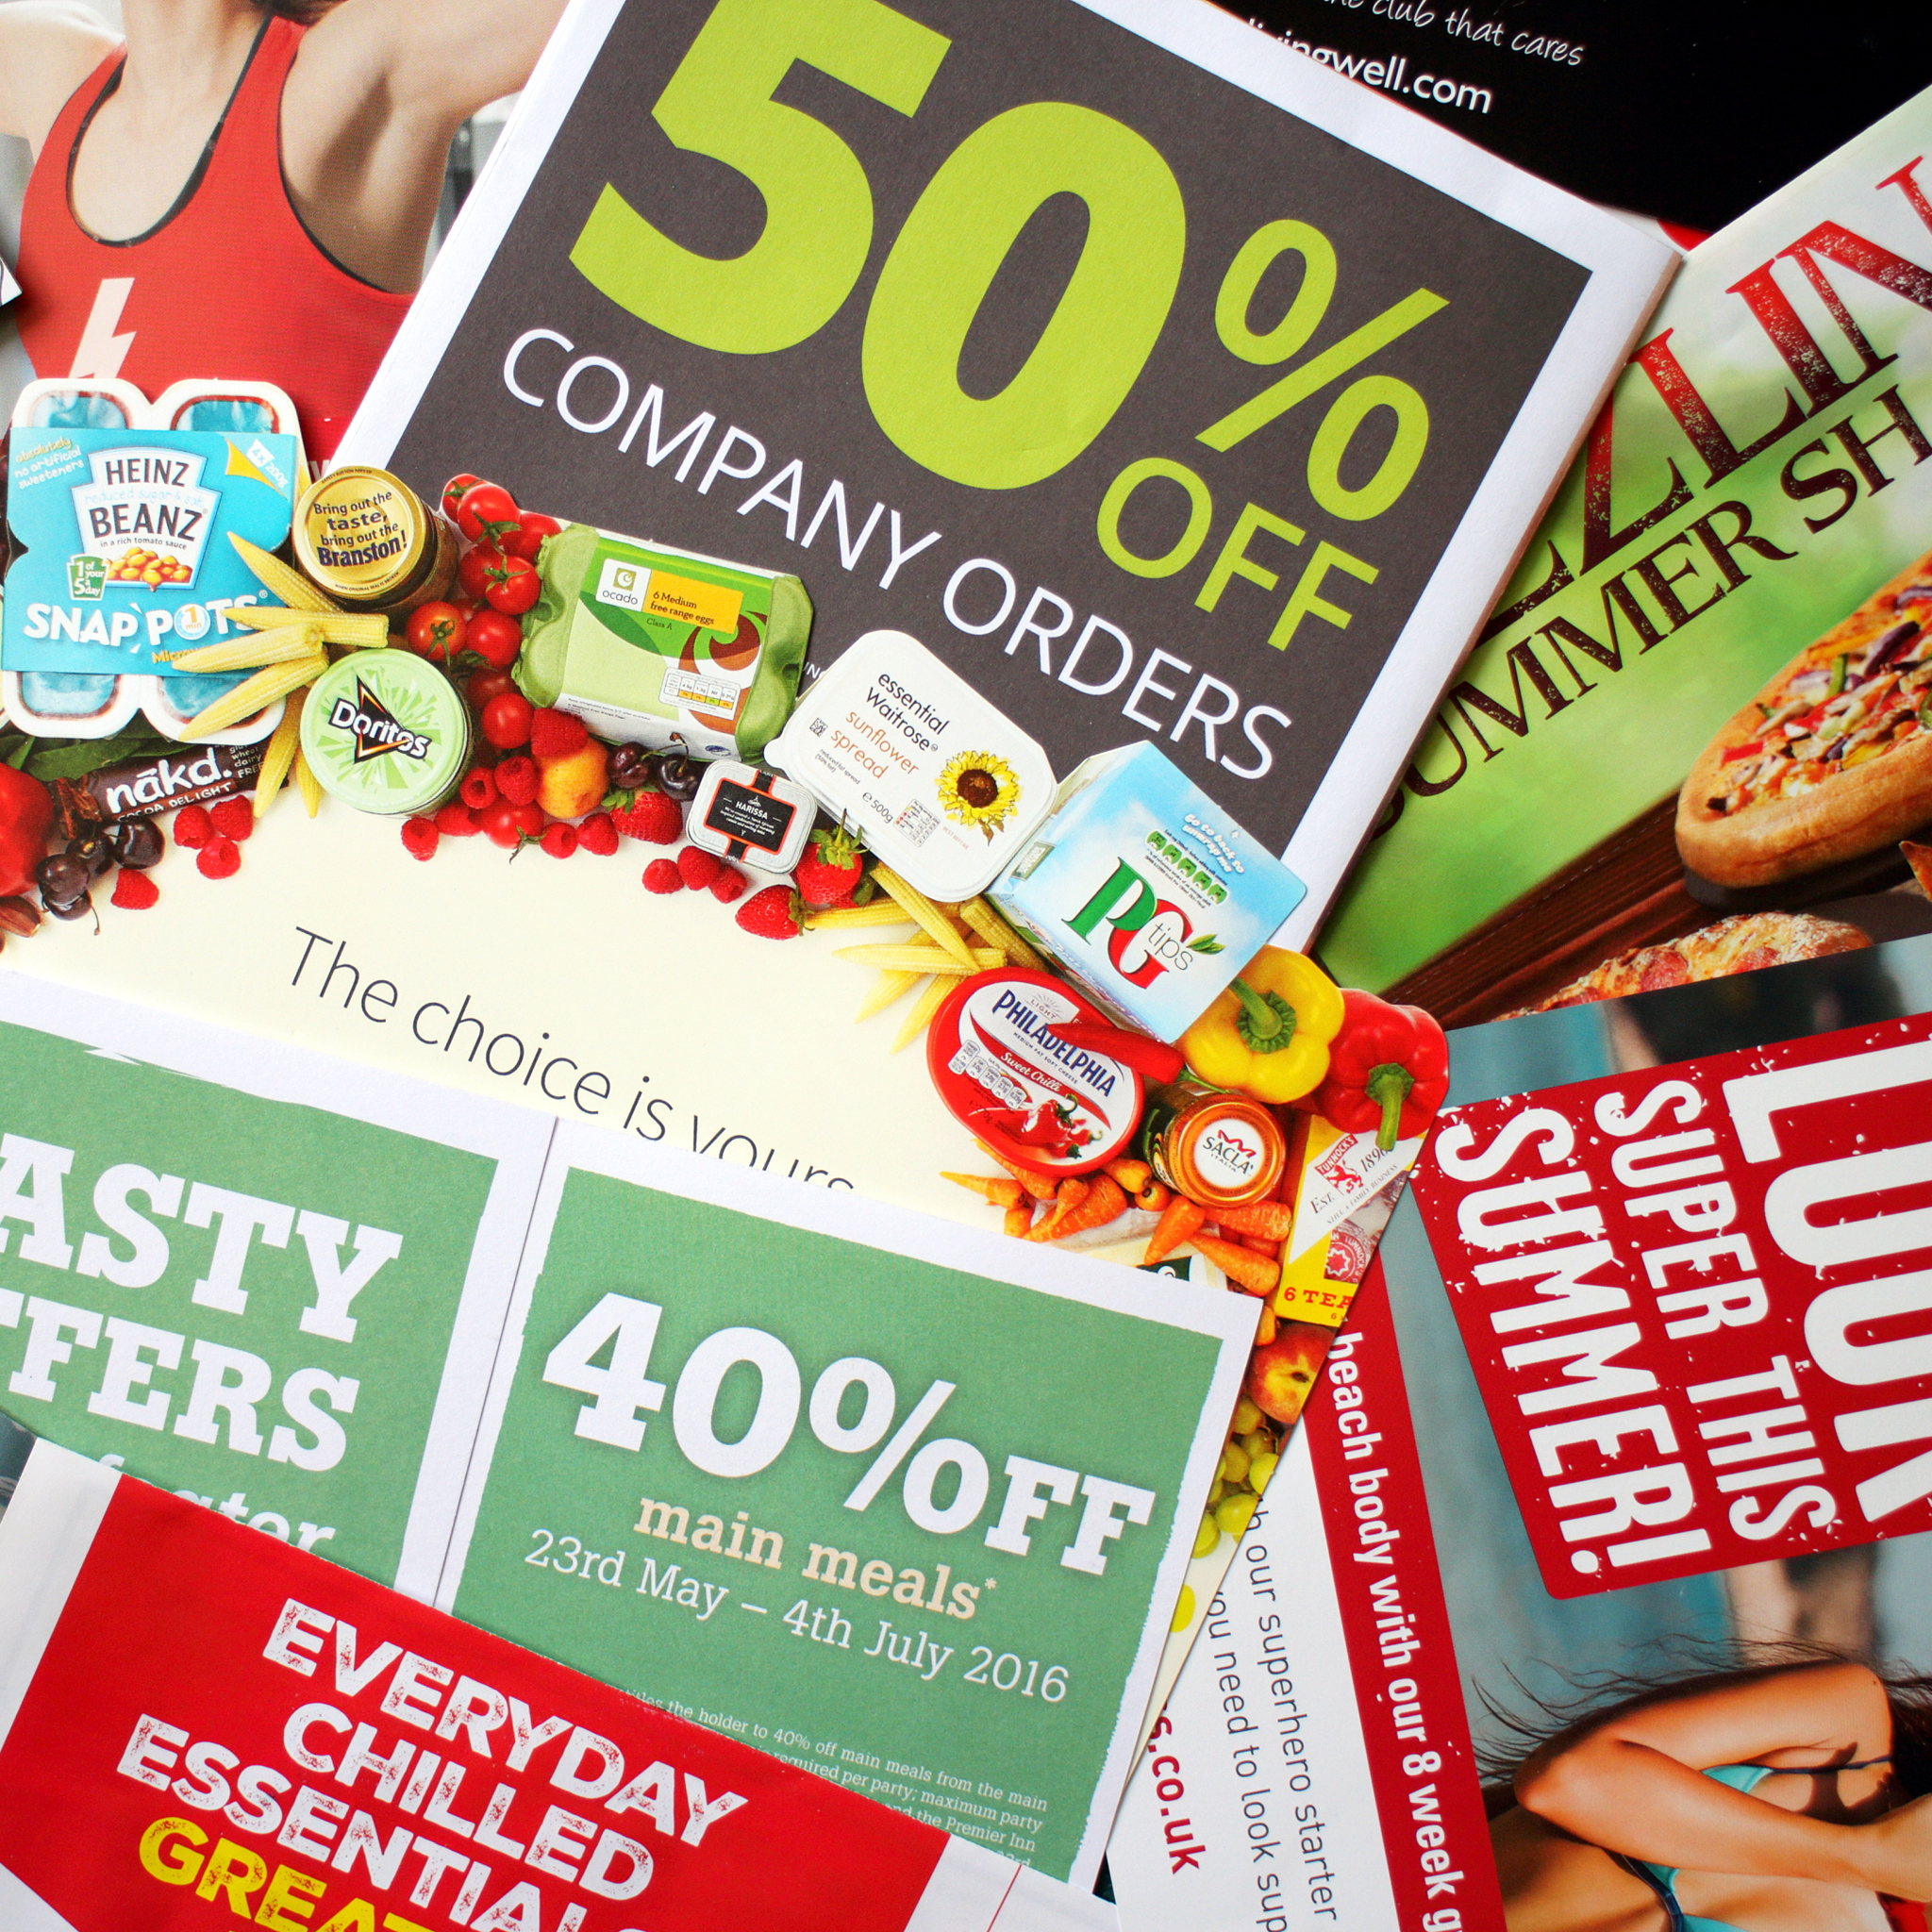 Sample of junk mail items delivered to a private residence in England as advertising for local retail businesses and services